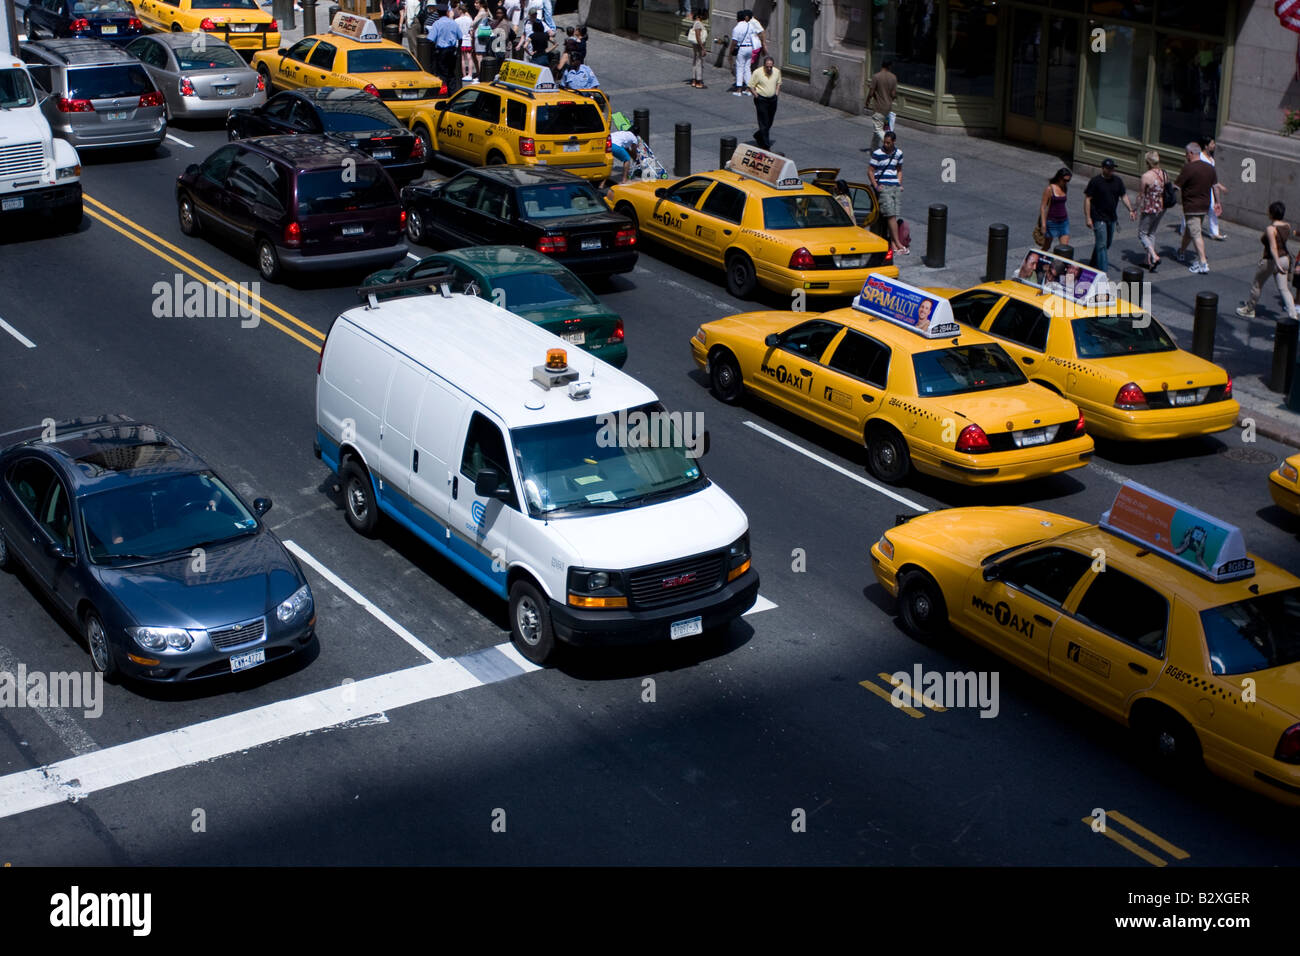 A Consolidated Edison truck navigates through midtown traffic in Manhattan, NY. - Stock Image